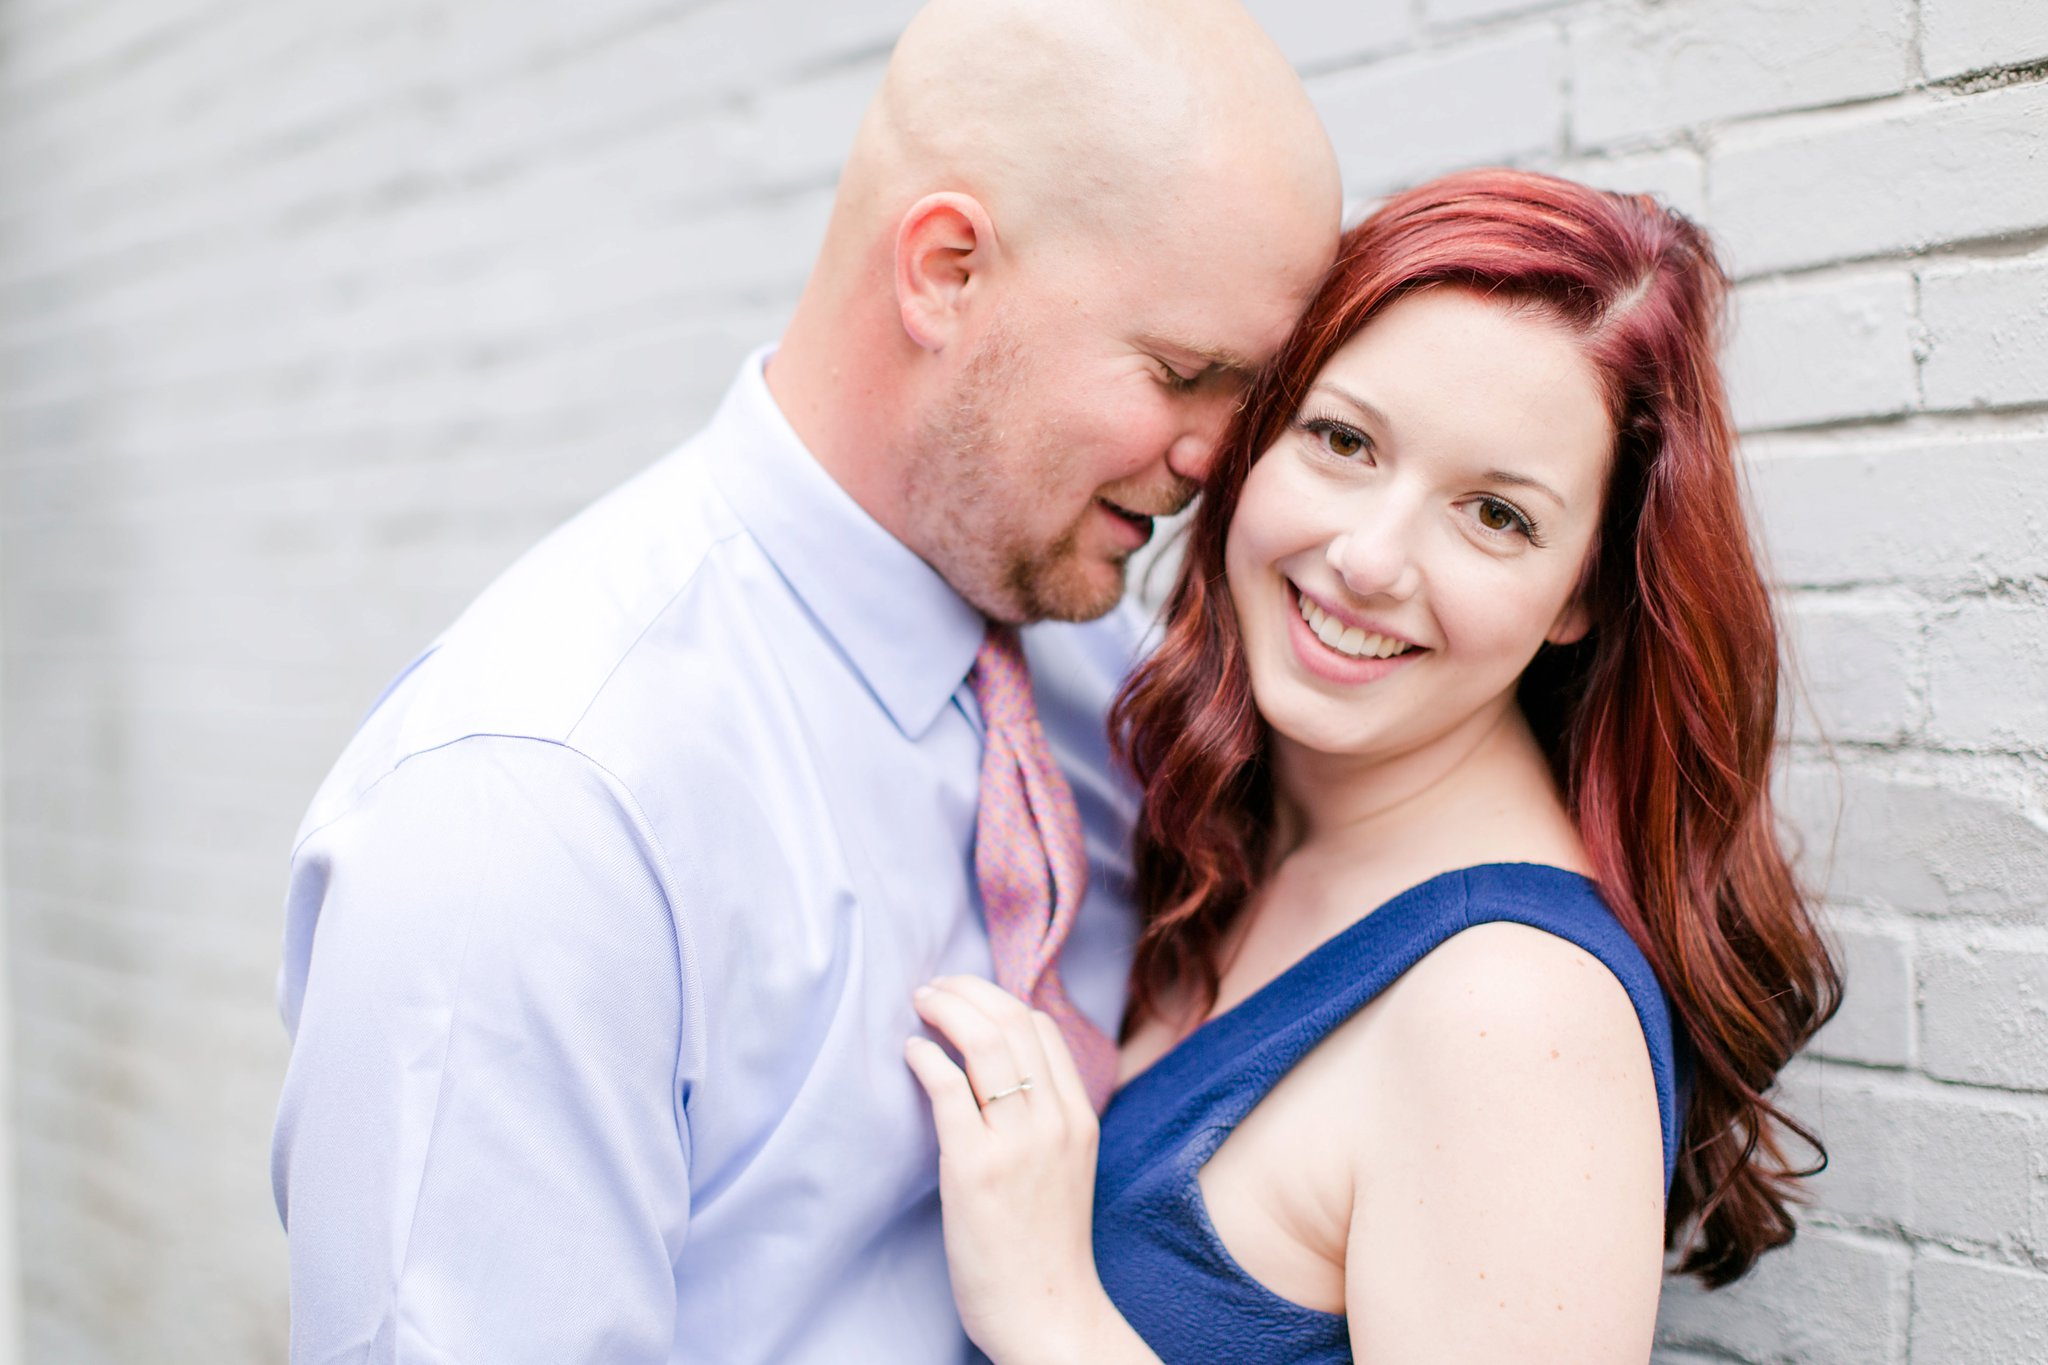 Old Town Manassas Battlefield Engagement Photos Virginia Wedding Photographer Jessica & Jason-103.jpg